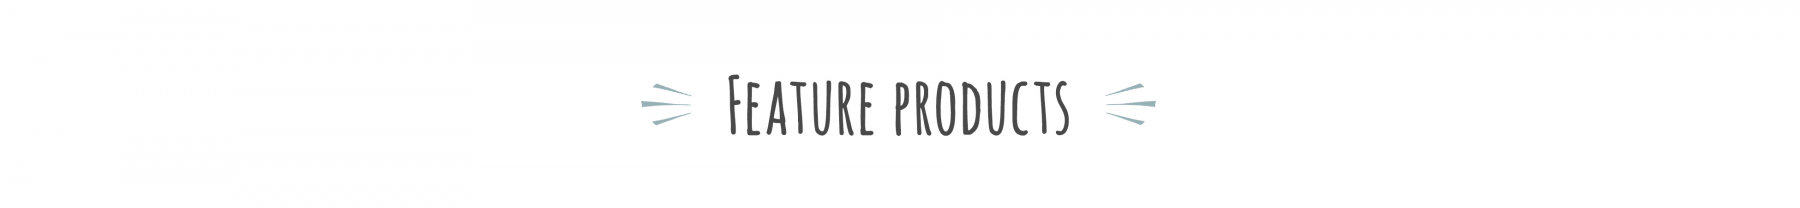 TITLE - Featured Products.png